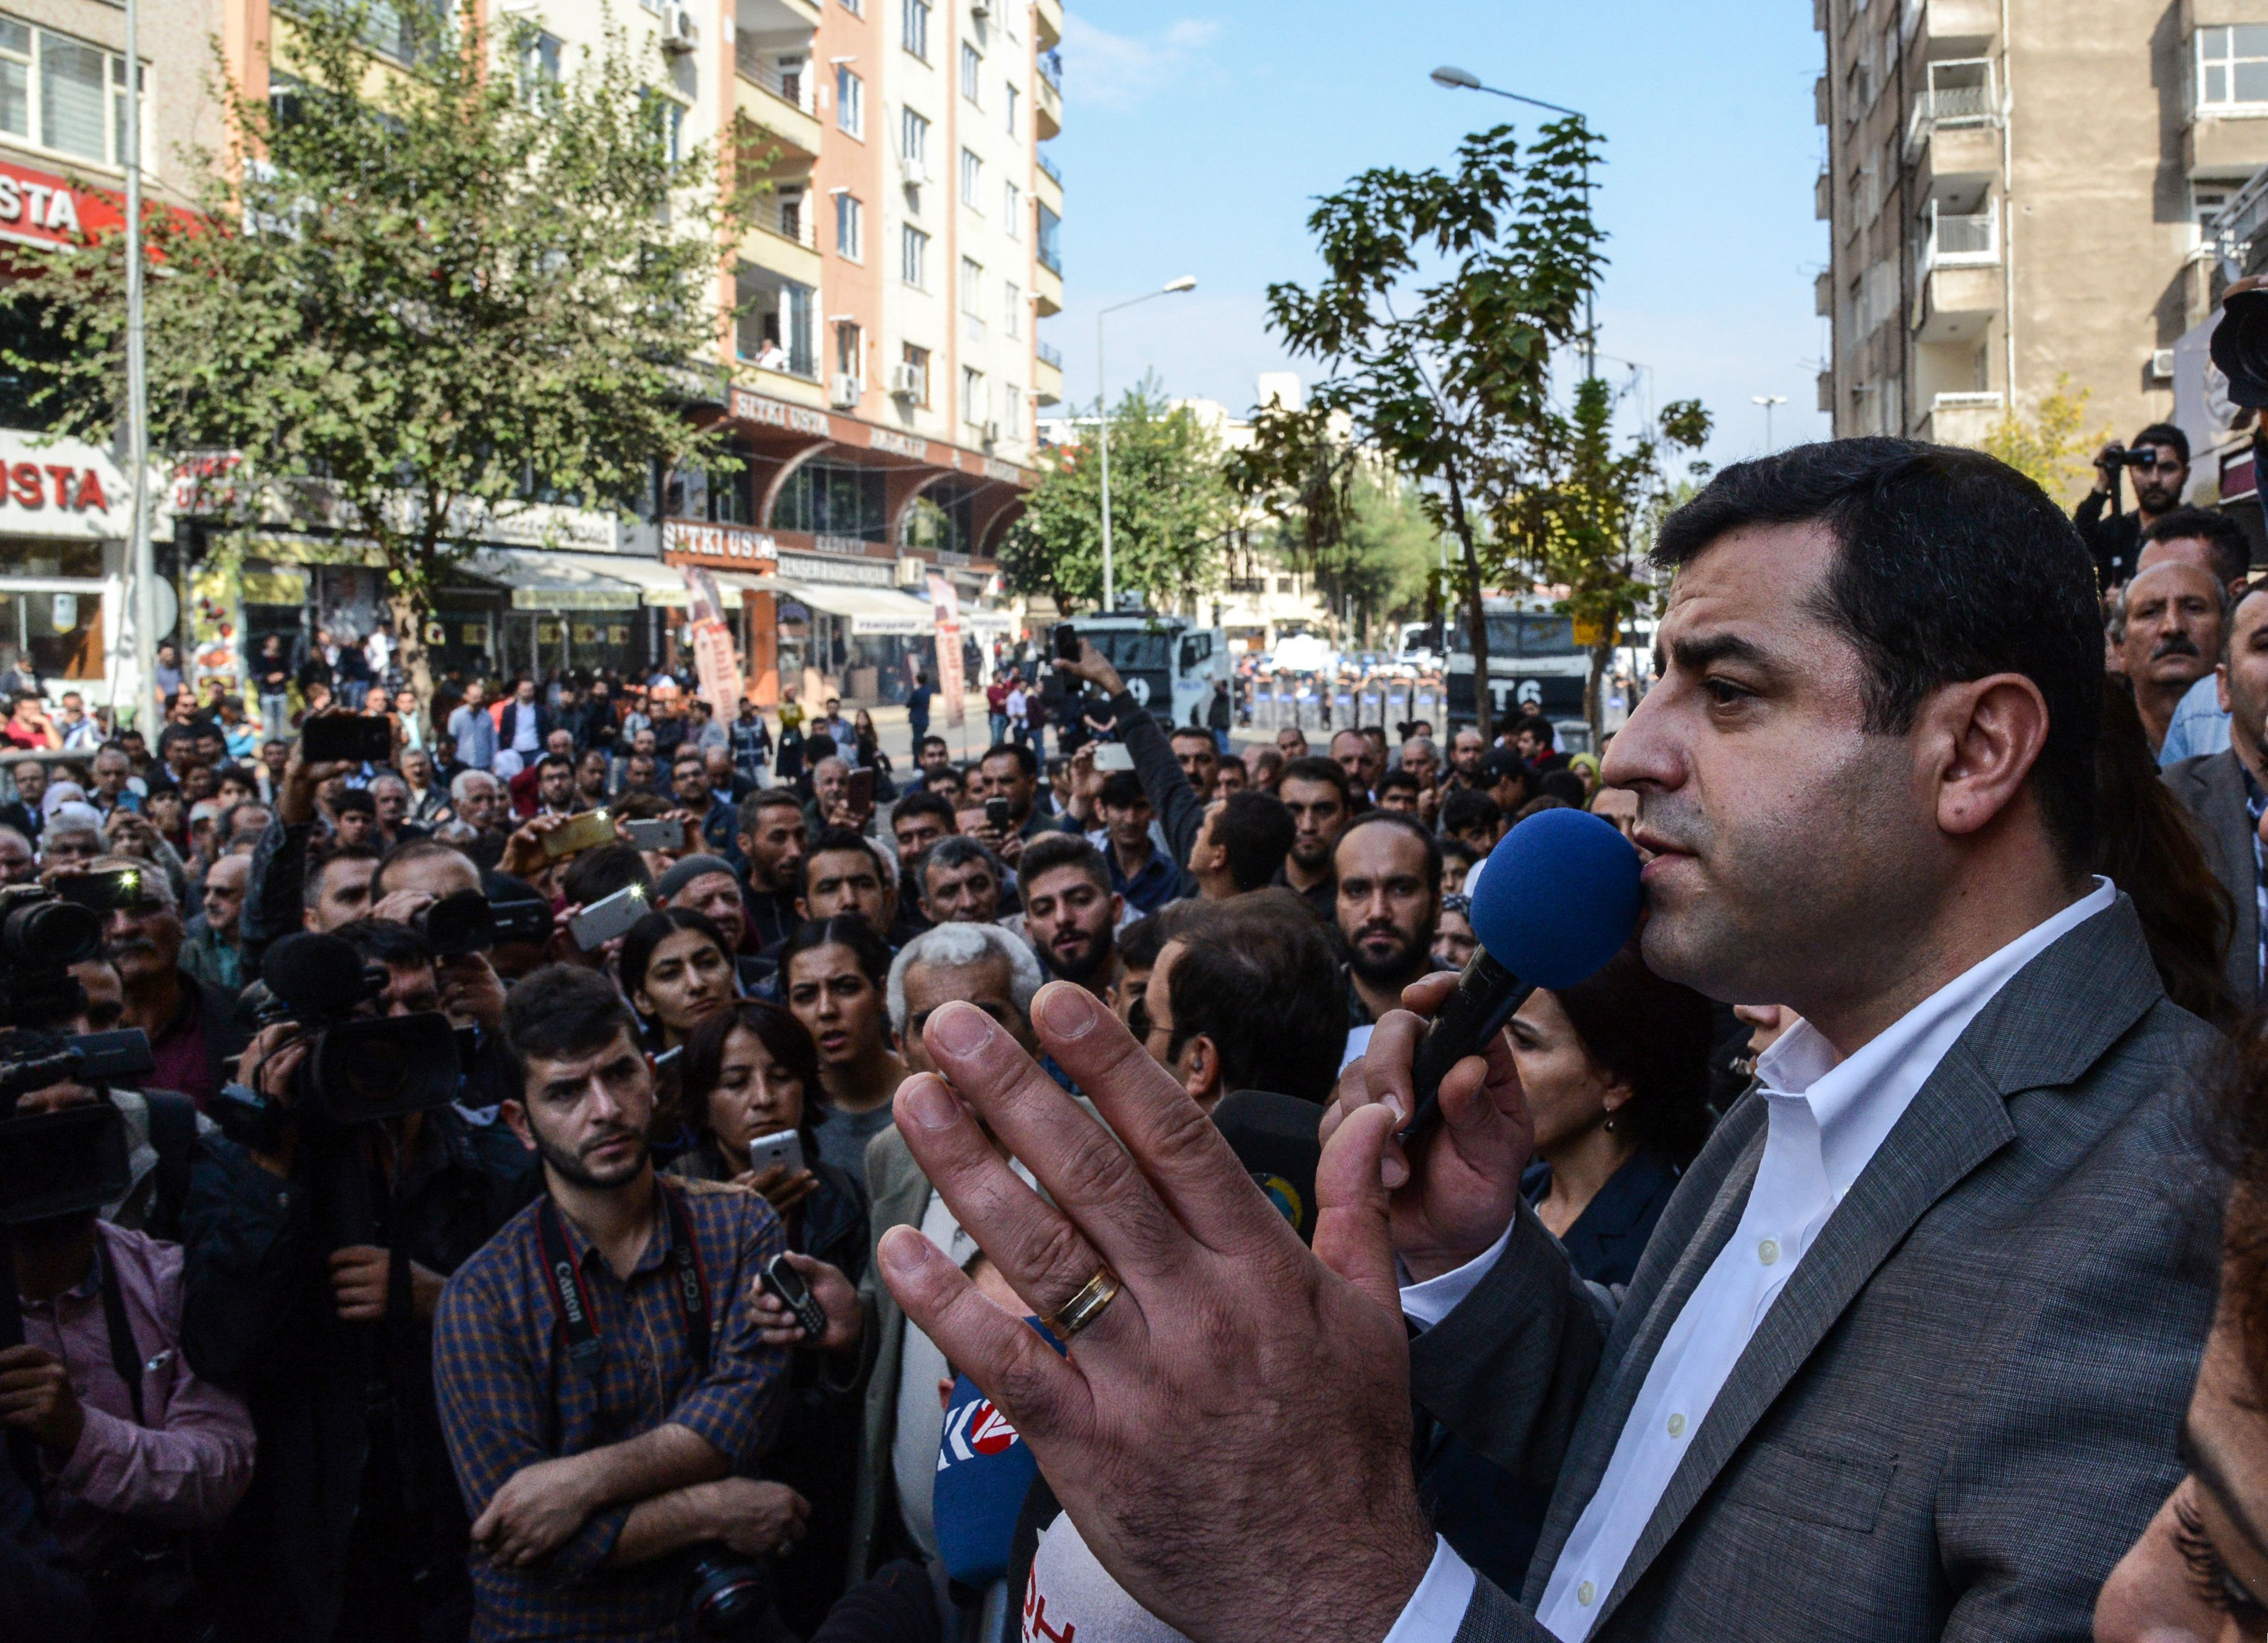 Selahattin Demirtas, Co-leader of the pro-Kurdish Peoples Democracy Party (HDP), addresses participants of a pro-Kurdish demonstration in front of the municipality headquarters in Diyarbakir, southeastern Turkey, Oct. 30, 2016.